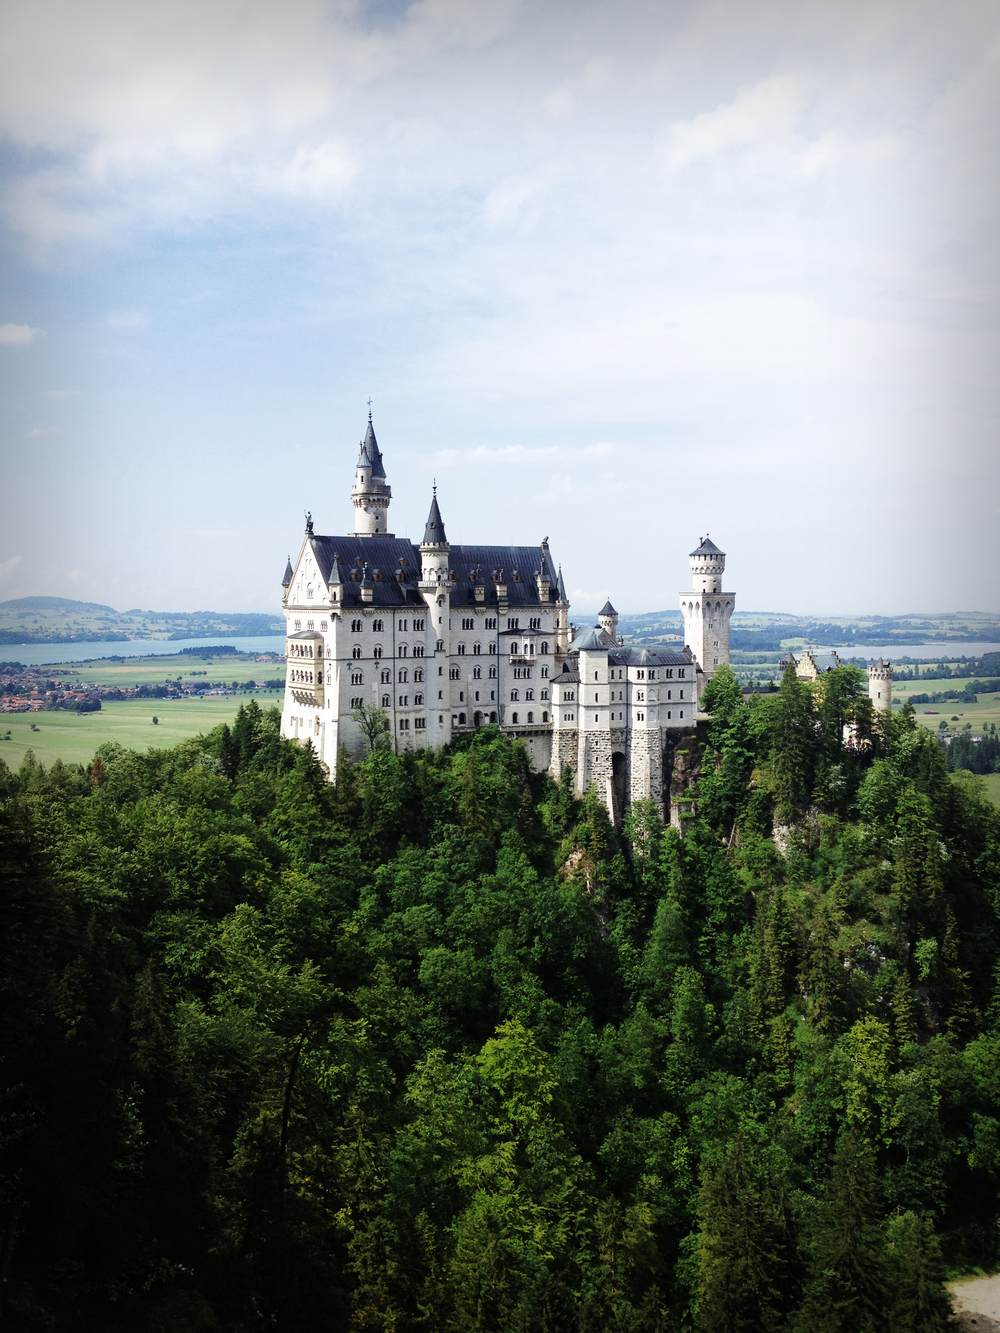 Gorgeous Schloss Neuschwanstein built by Mad King Ludwig in Bavaria, Germany